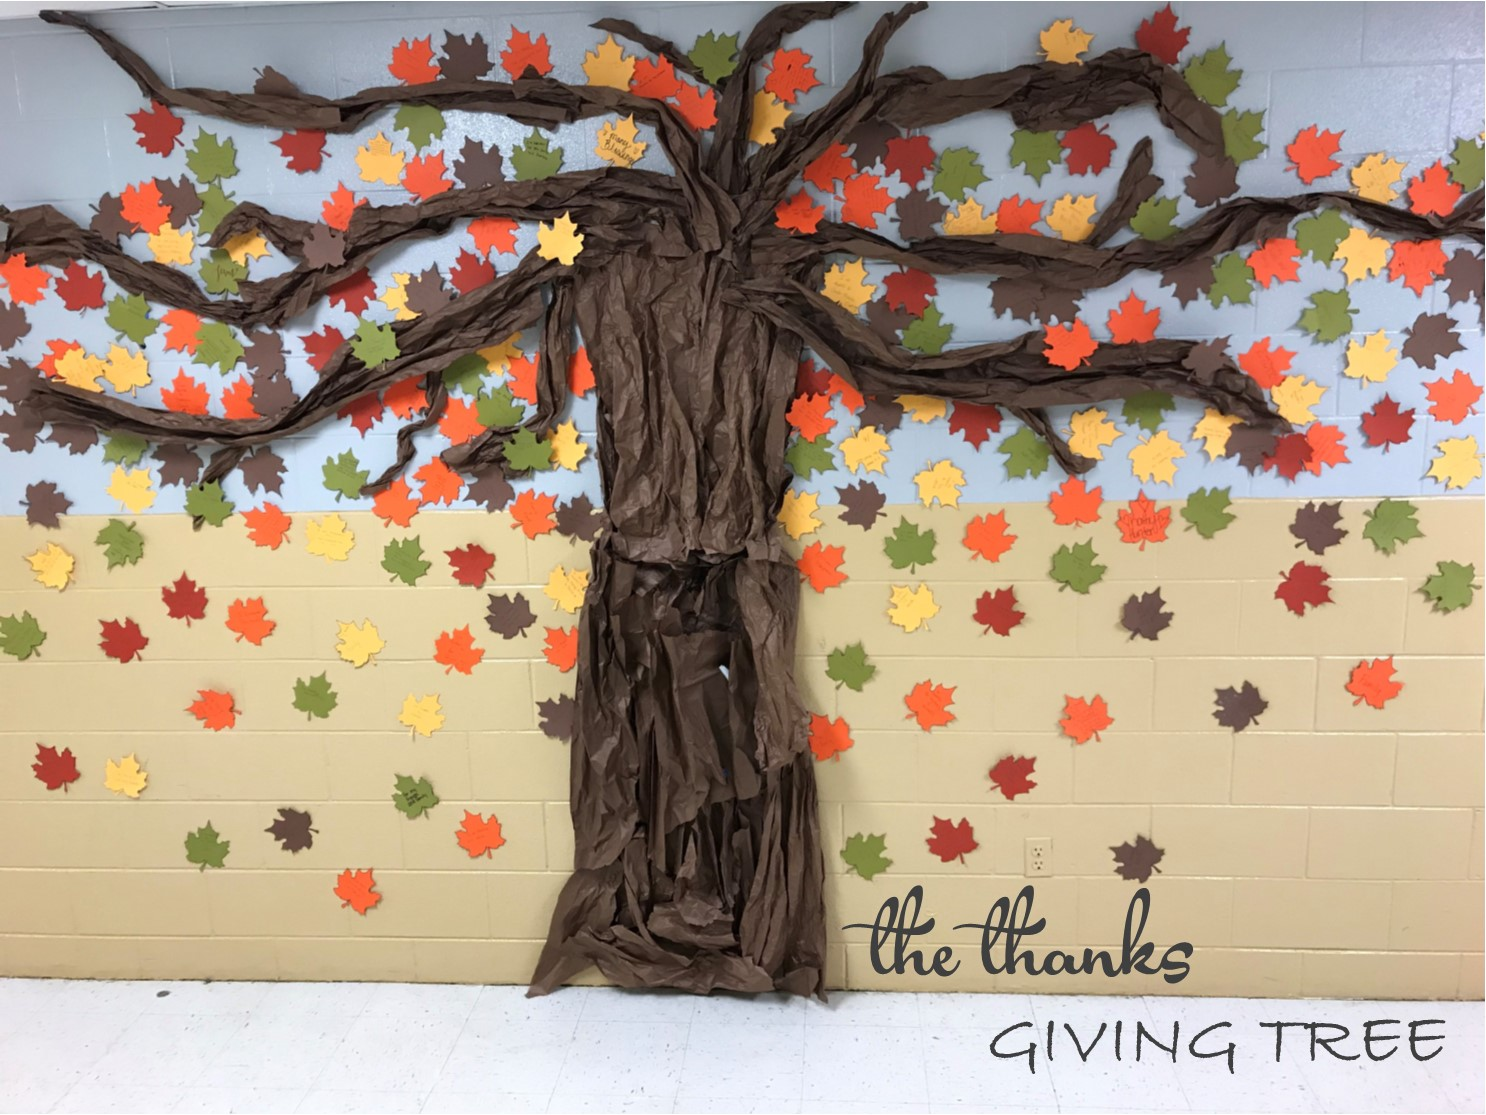 The Link Crew members at CCHS helped to create a Thanks-Giving Tree to celebrate this season of giving thanks.